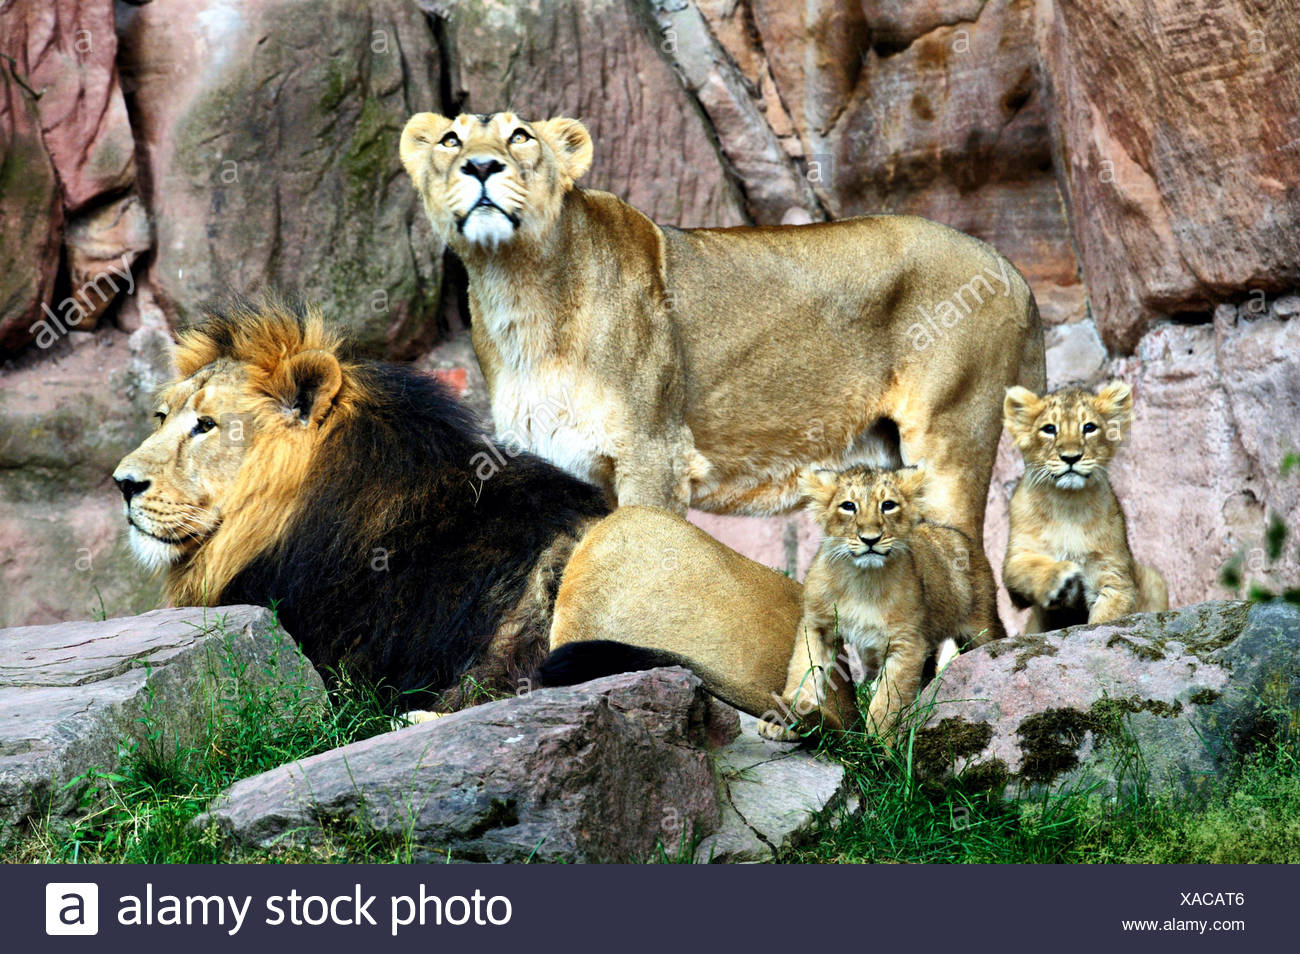 Asiatische Lions asiatischer löwe panthera leo persica asiatic lions stock photo